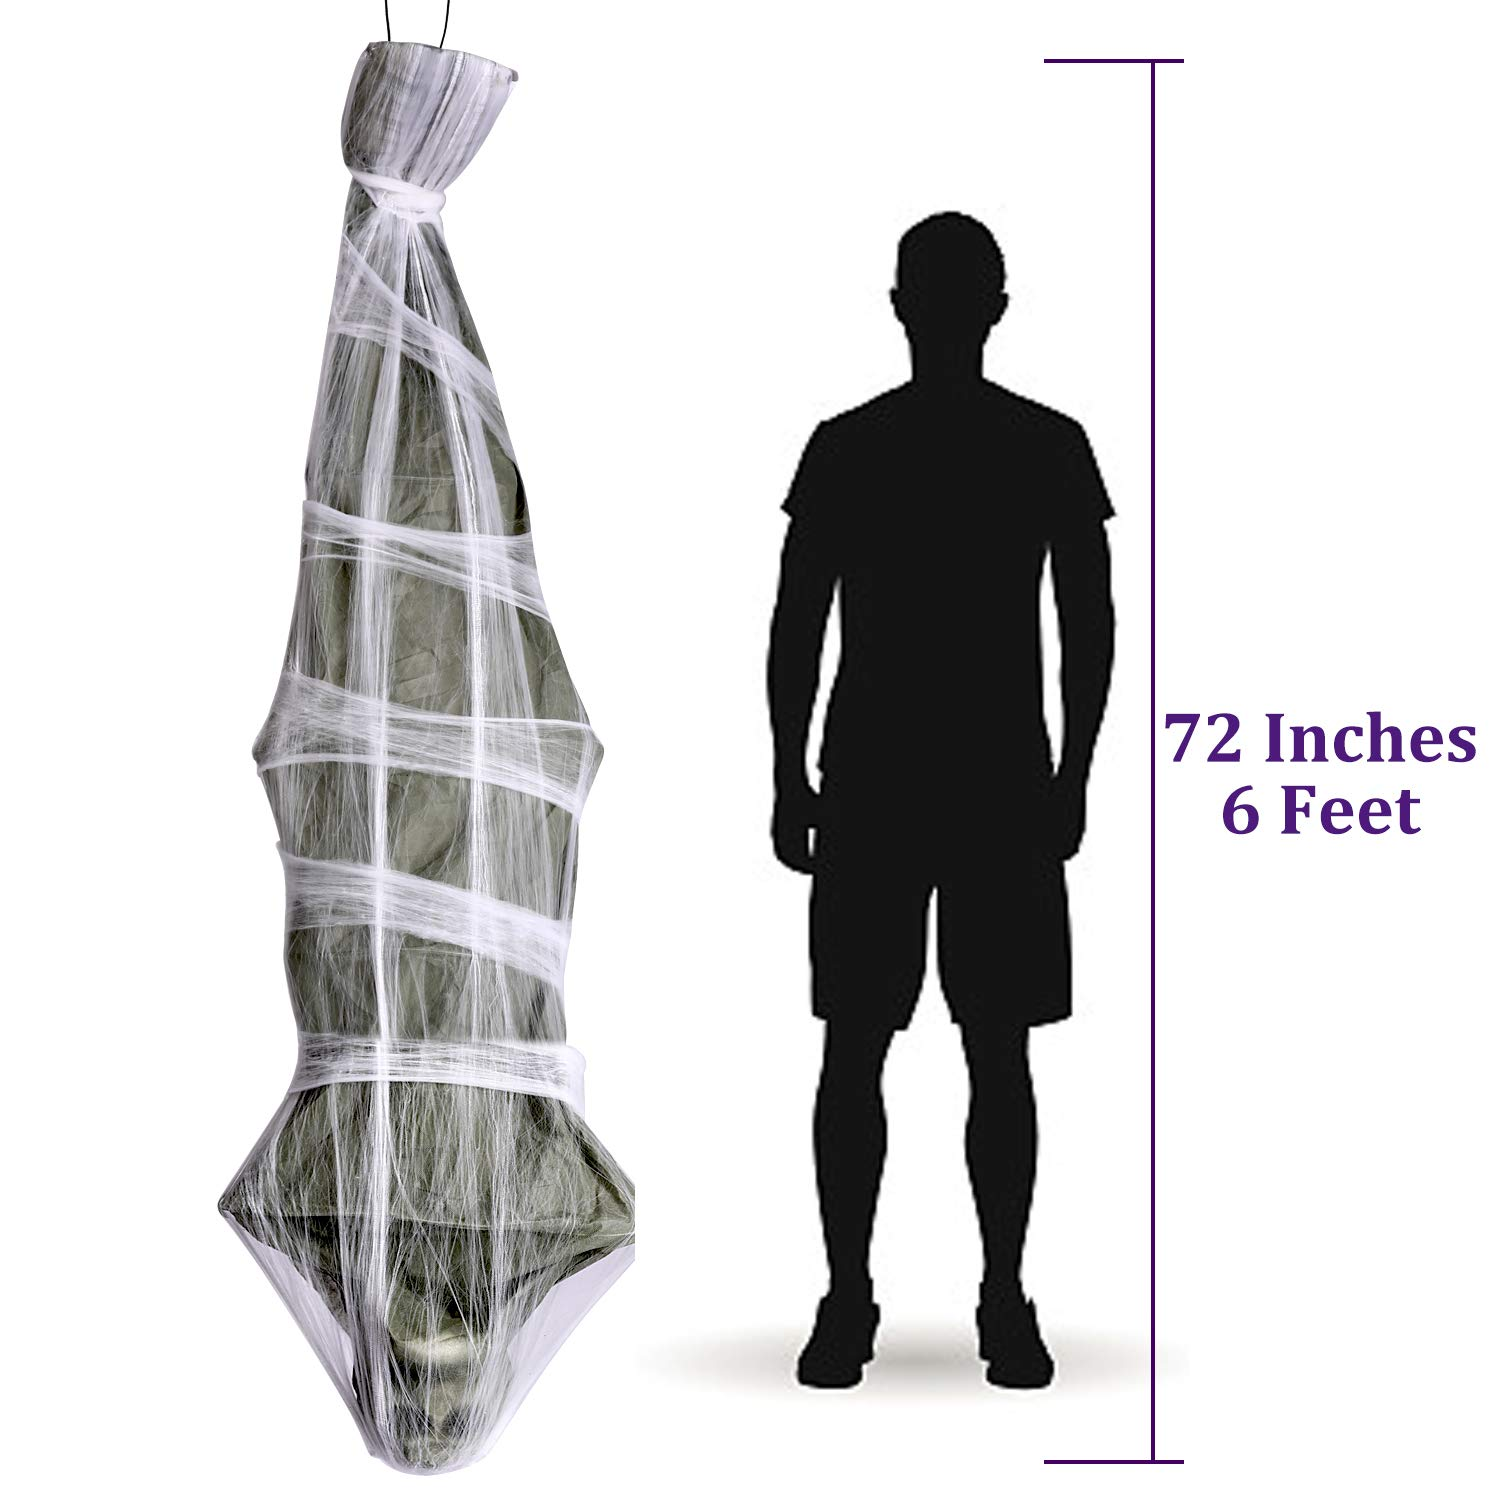 UFUNGA 72 inch Cocoon Corpse Decoration Scary Home Decor for Yard Outdoor Indoor Party Haunted House Halloween Decorations Hanging Ghost